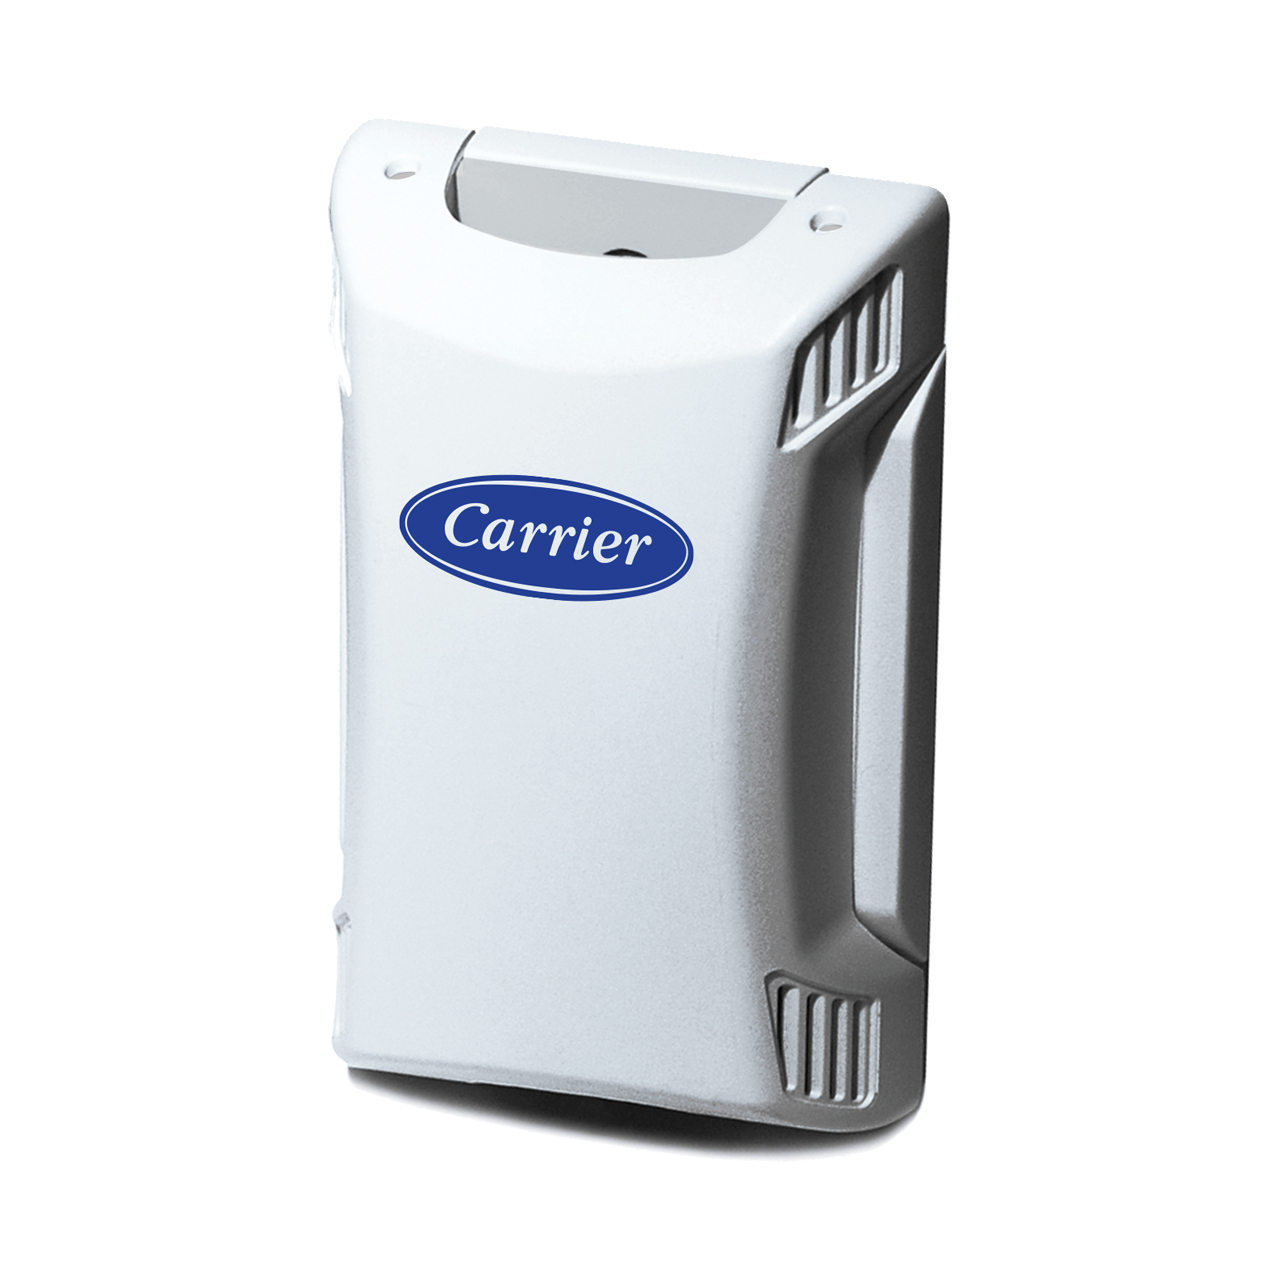 carrier-NSA-HH-CO2-R2-room-sensor-w-temp